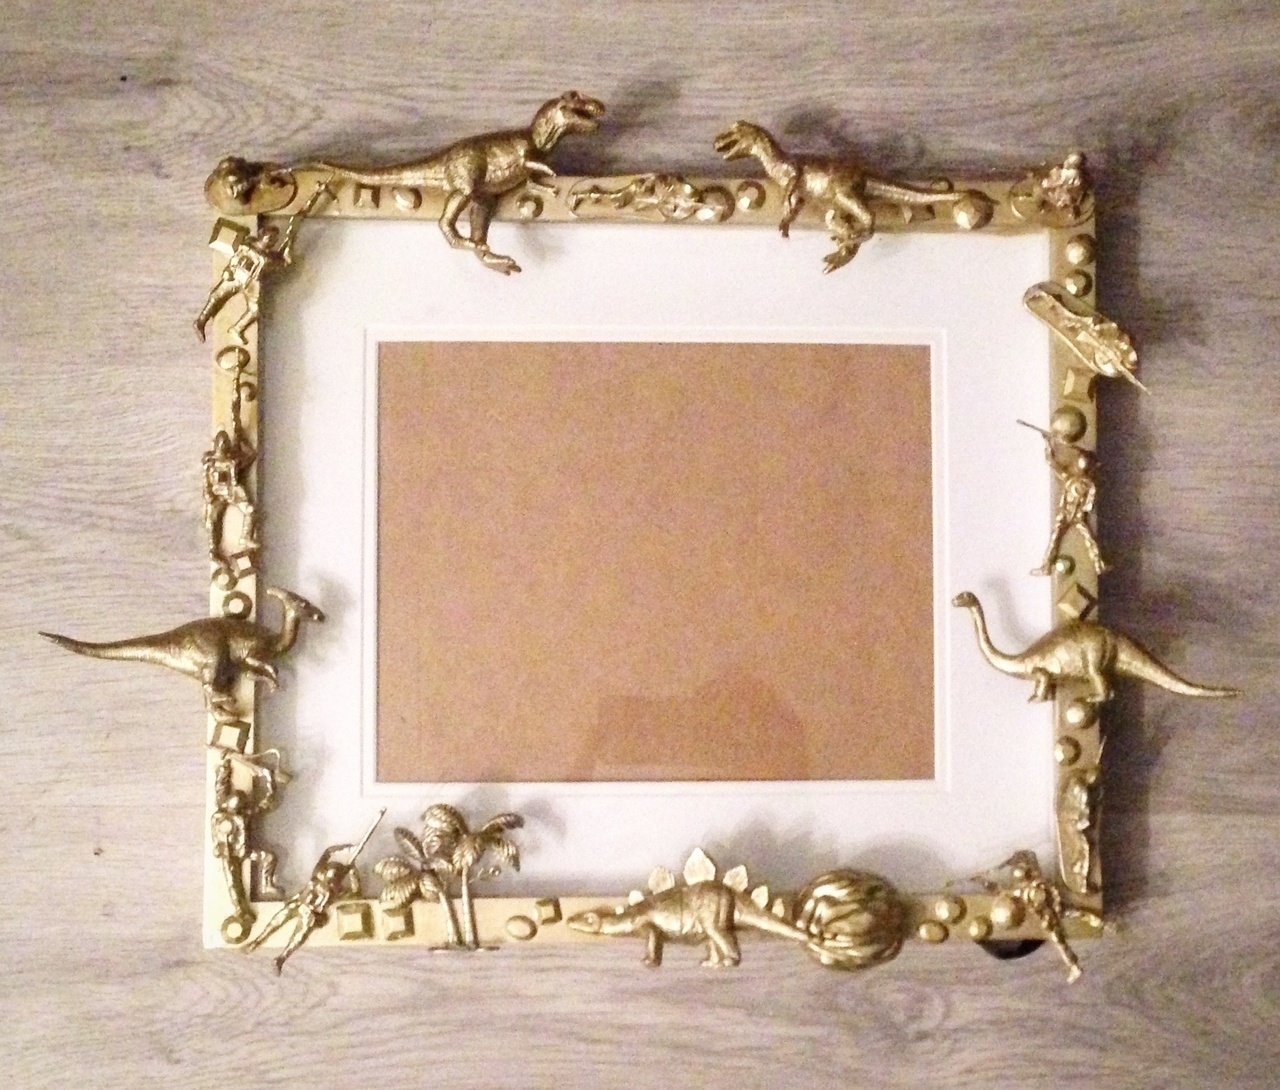 Dino soldiers pictureframe